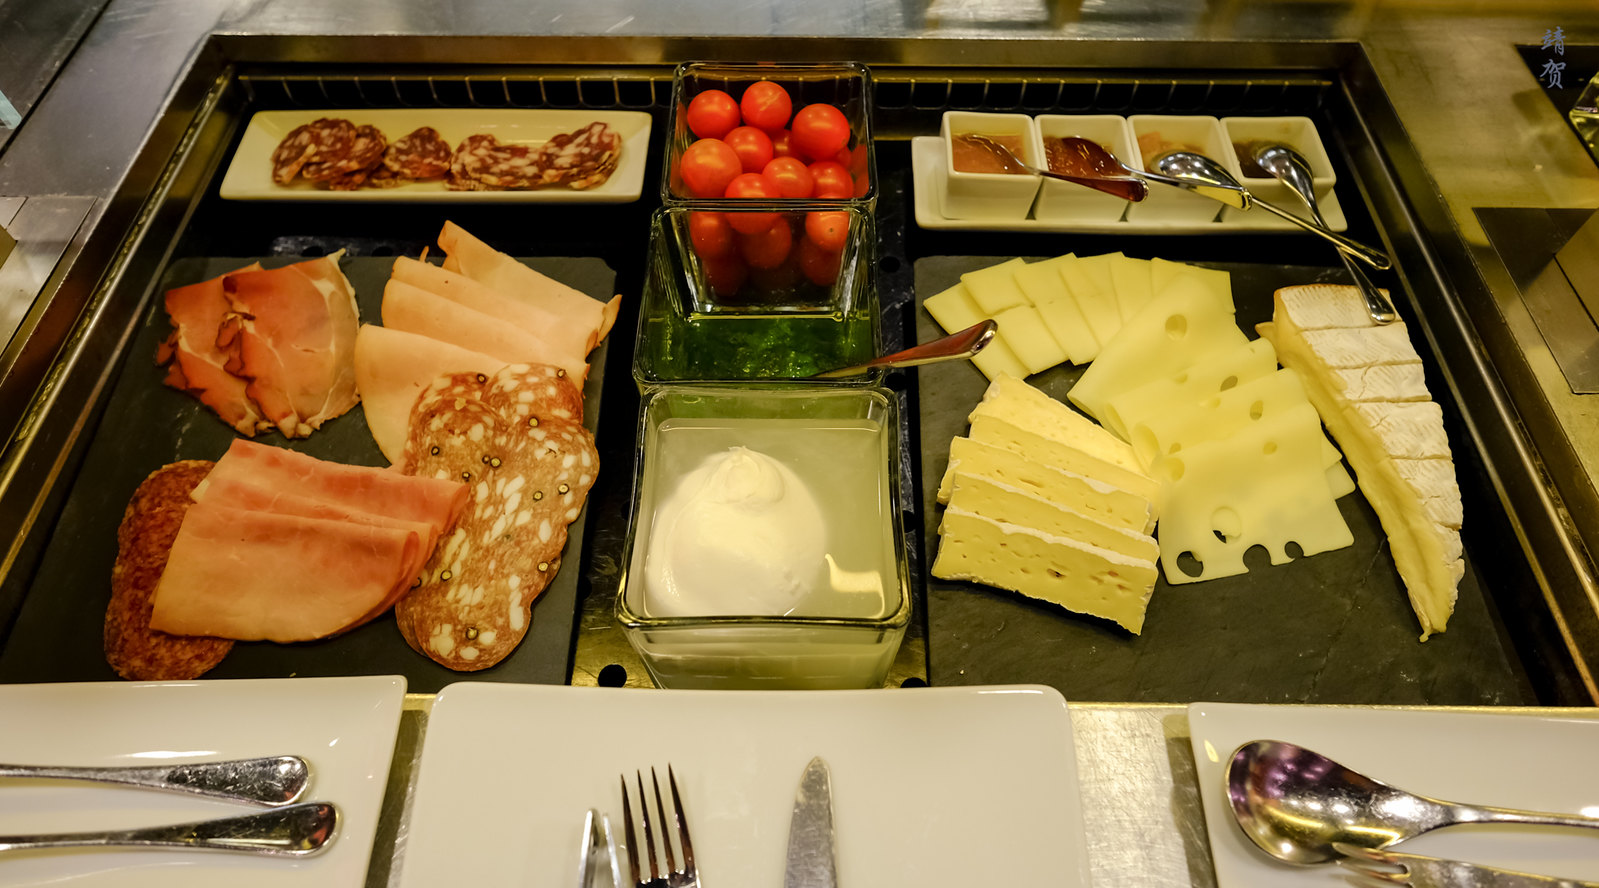 Charcuterie and cheese area